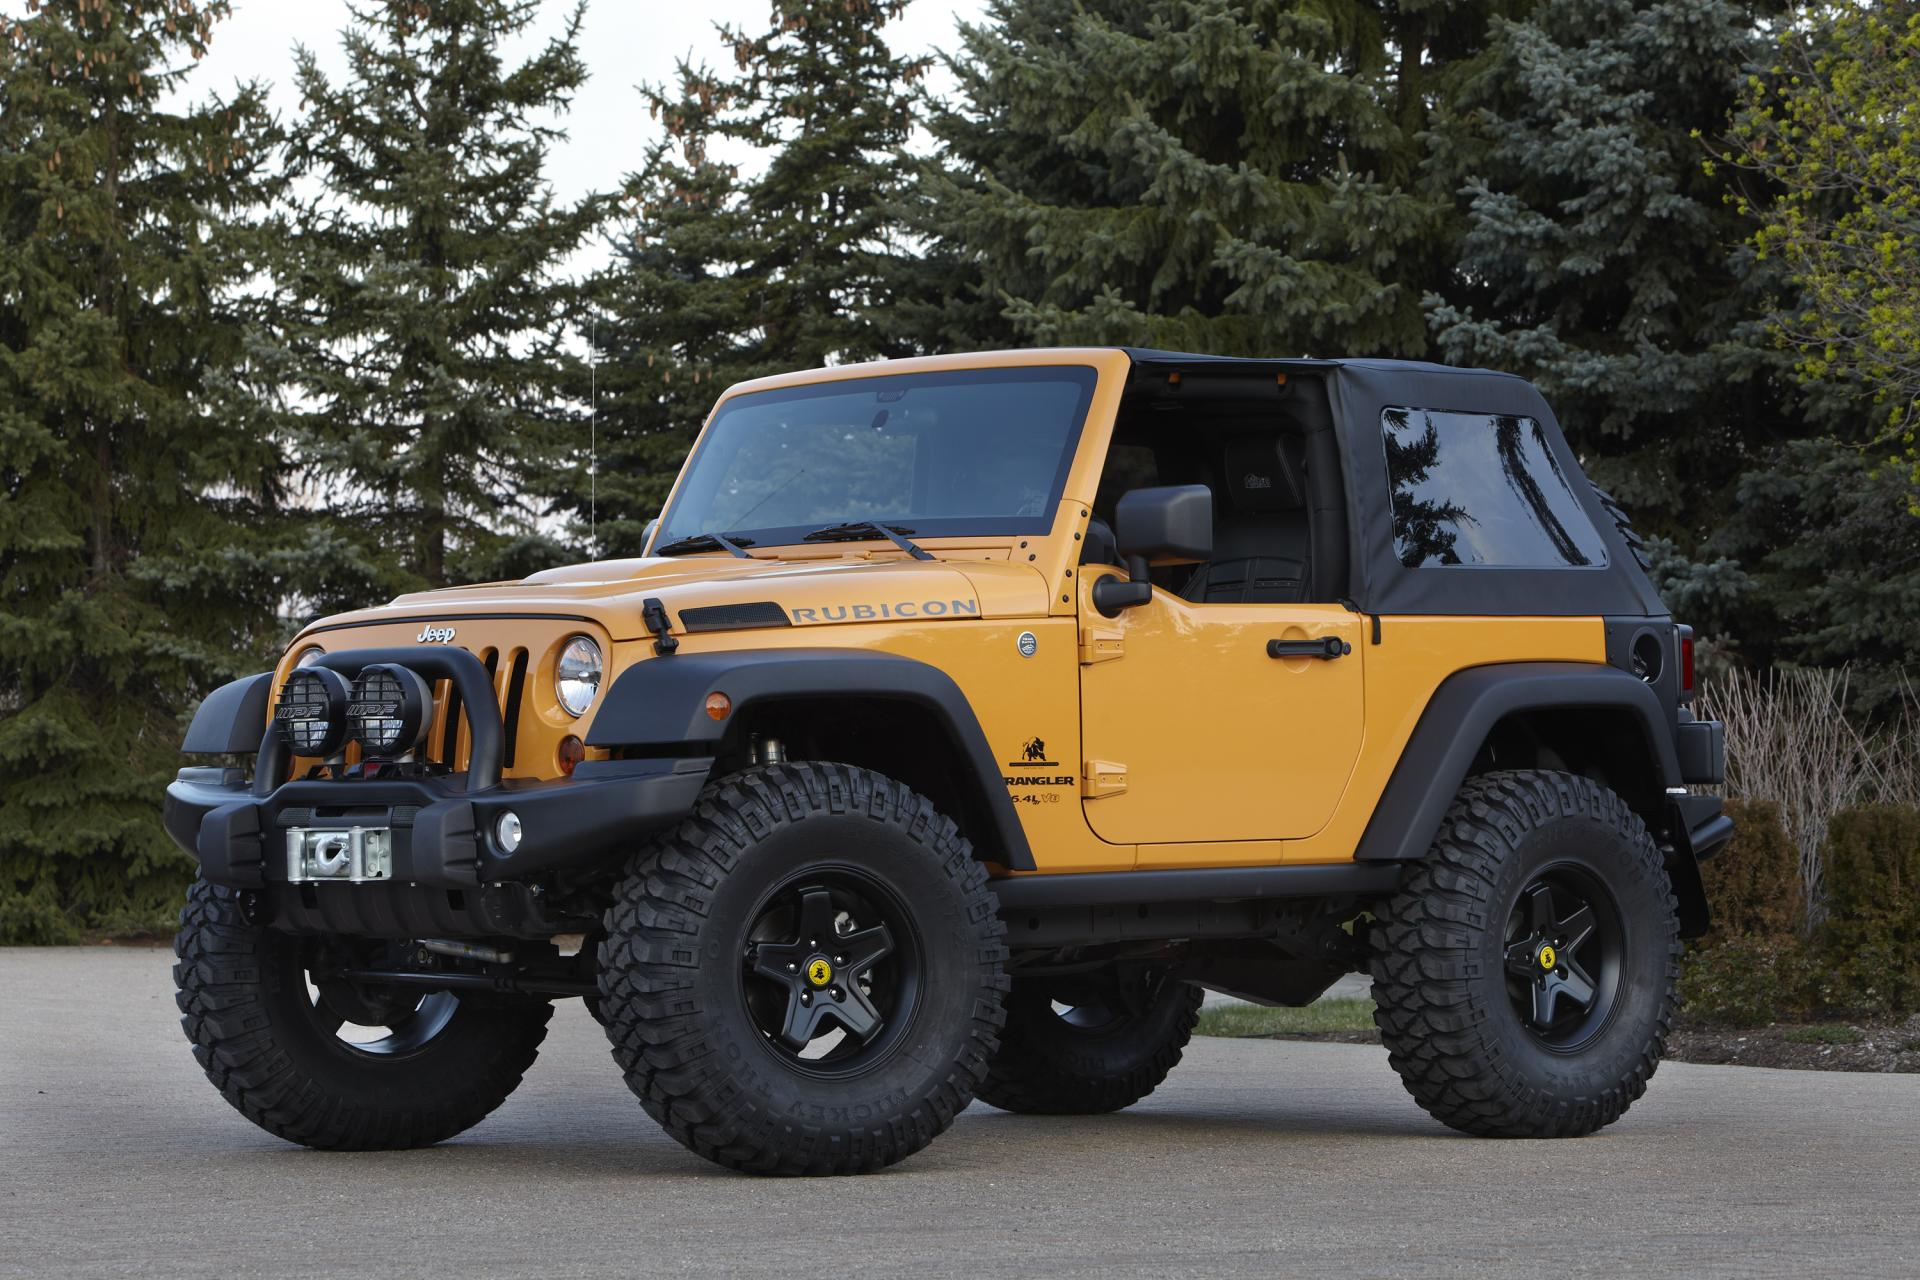 2012 jeep wrangler traildozer concept news and information research and history. Black Bedroom Furniture Sets. Home Design Ideas